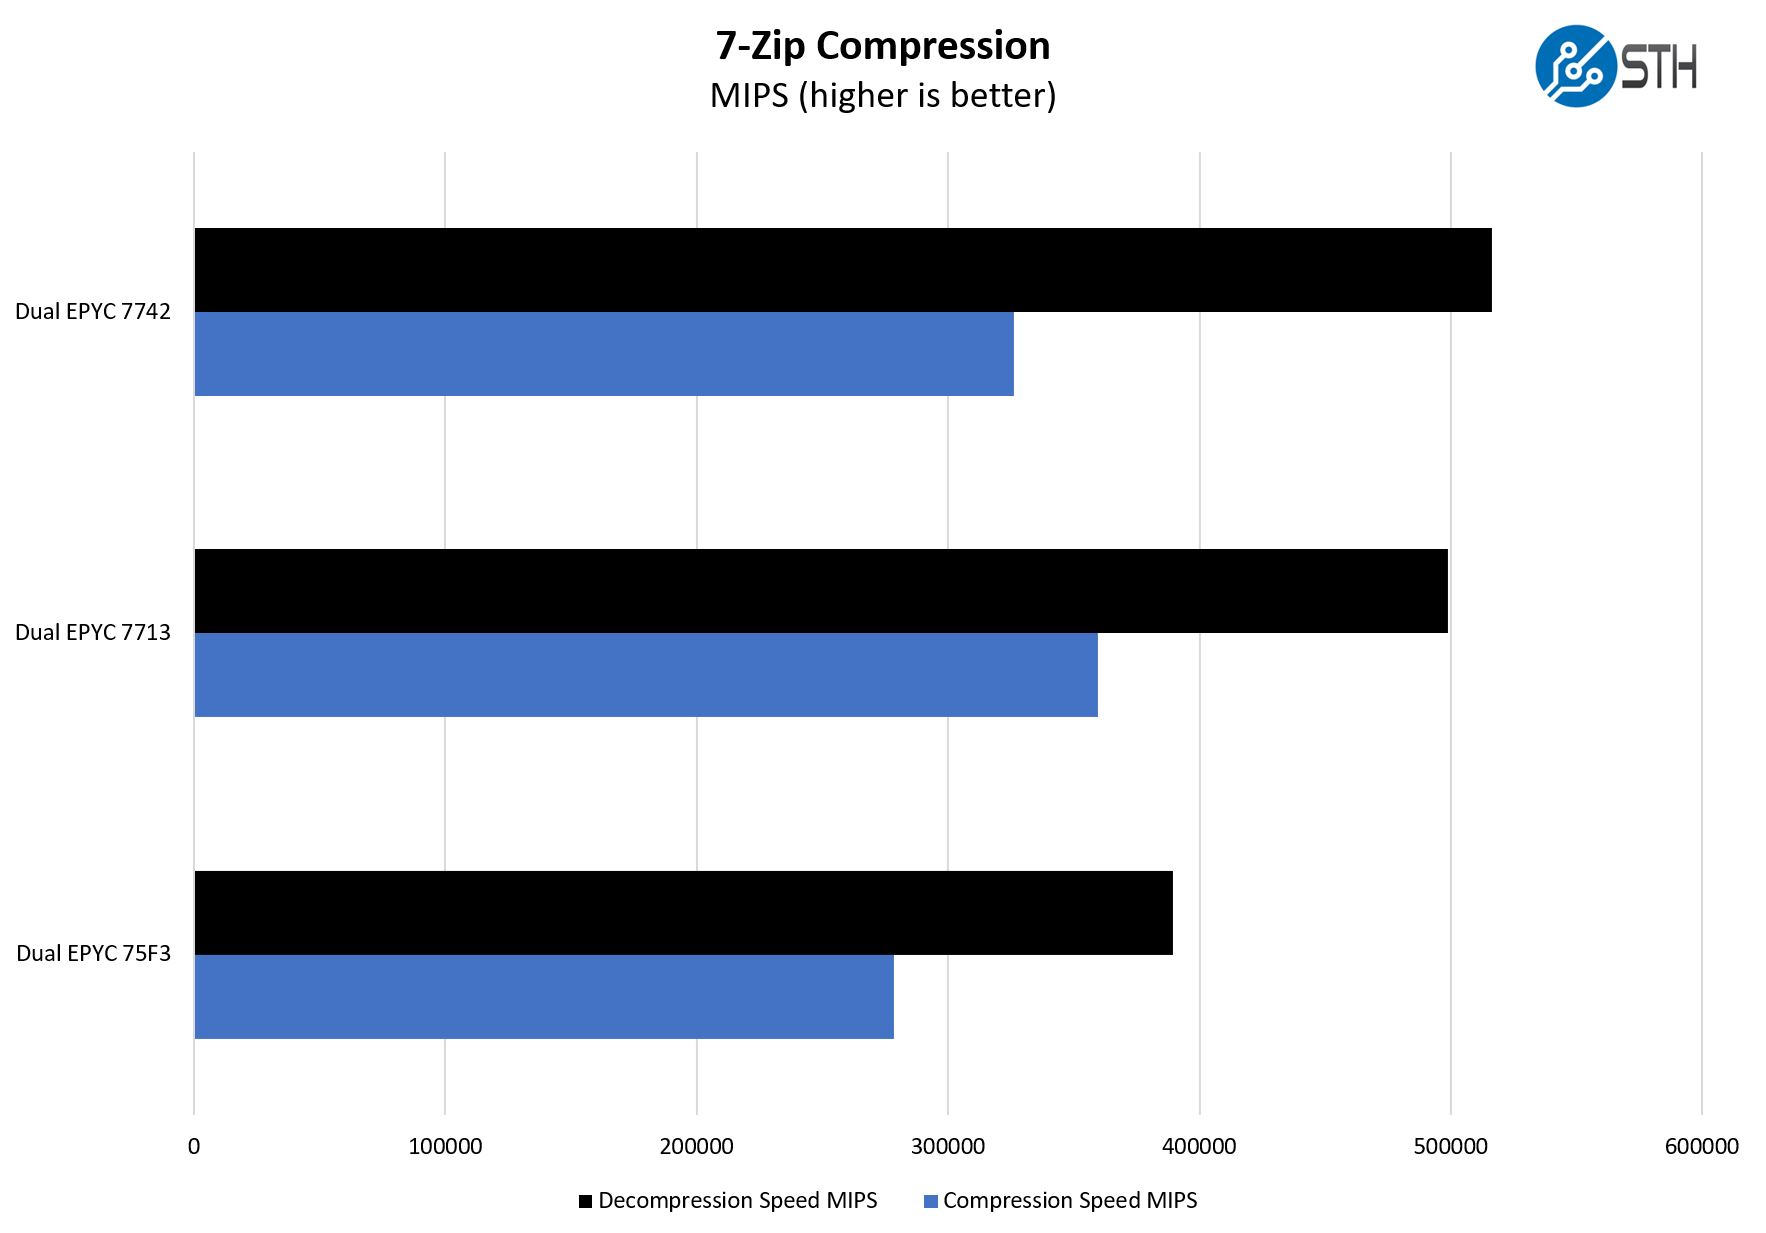 Supermicro AS 1024US TRT 7zip Compression Performance